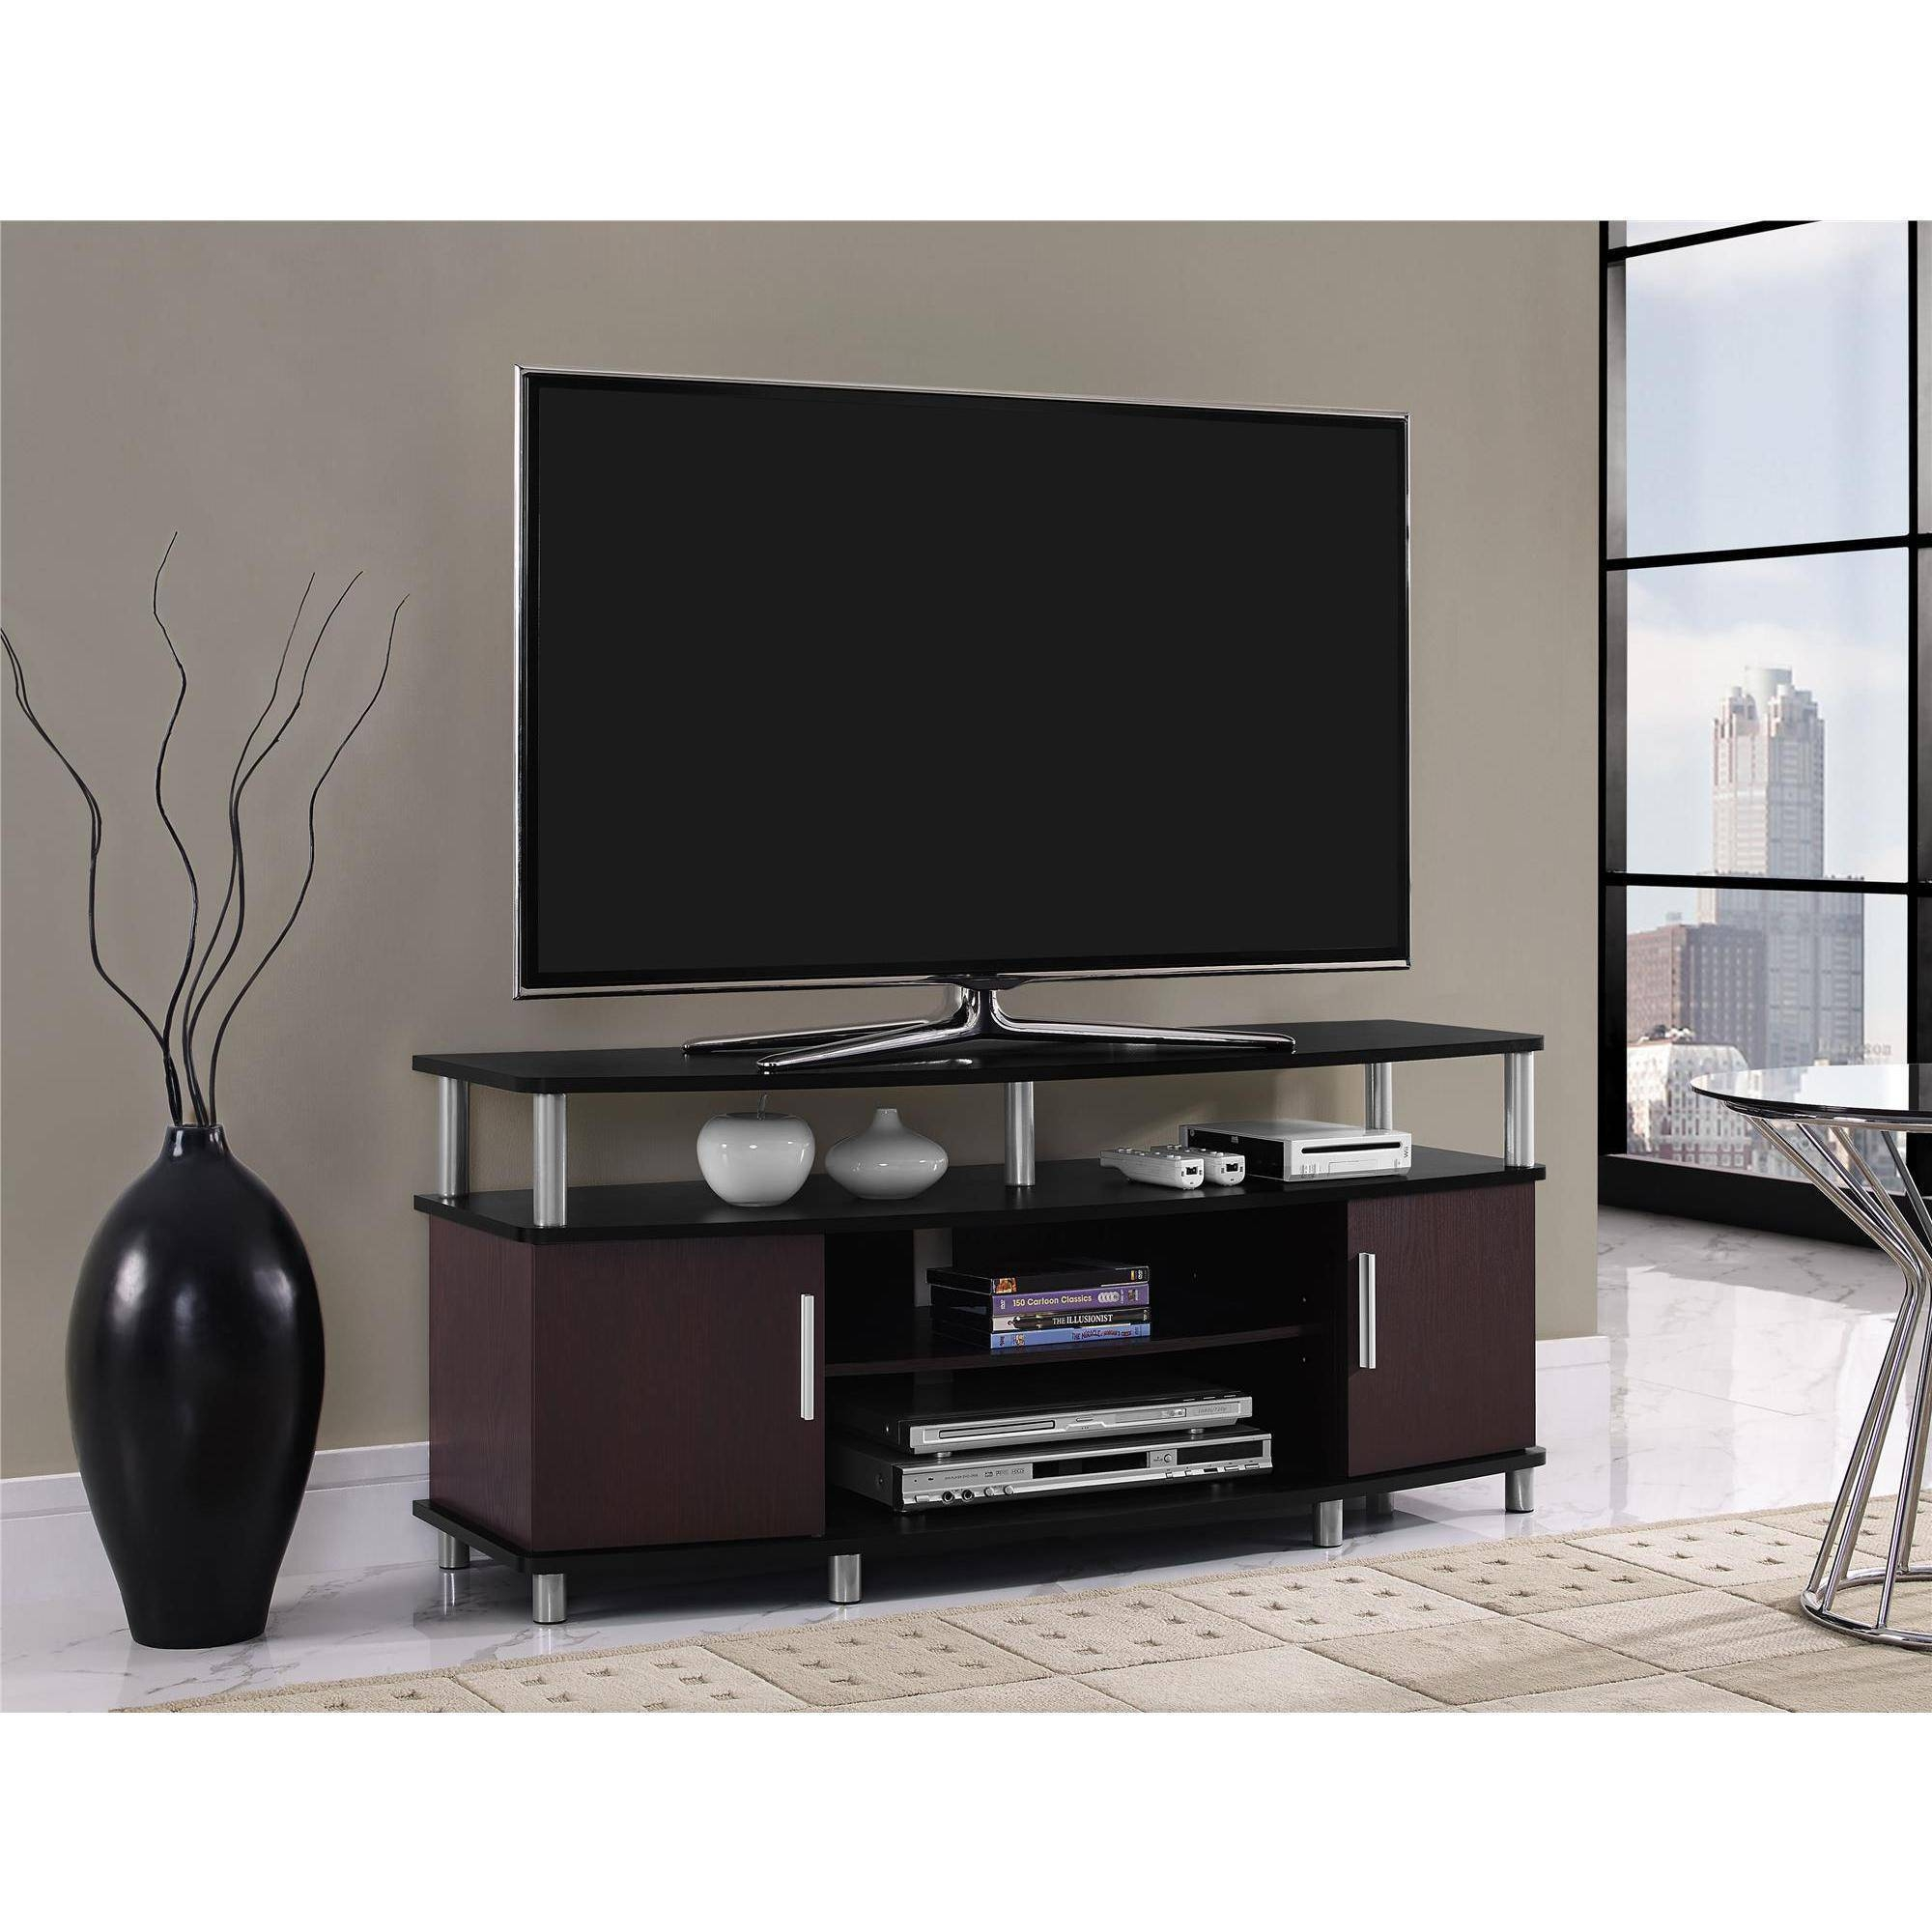 Tv Stands & Entertainment Centers - Walmart in Black Tv Cabinets With Drawers (Image 13 of 15)